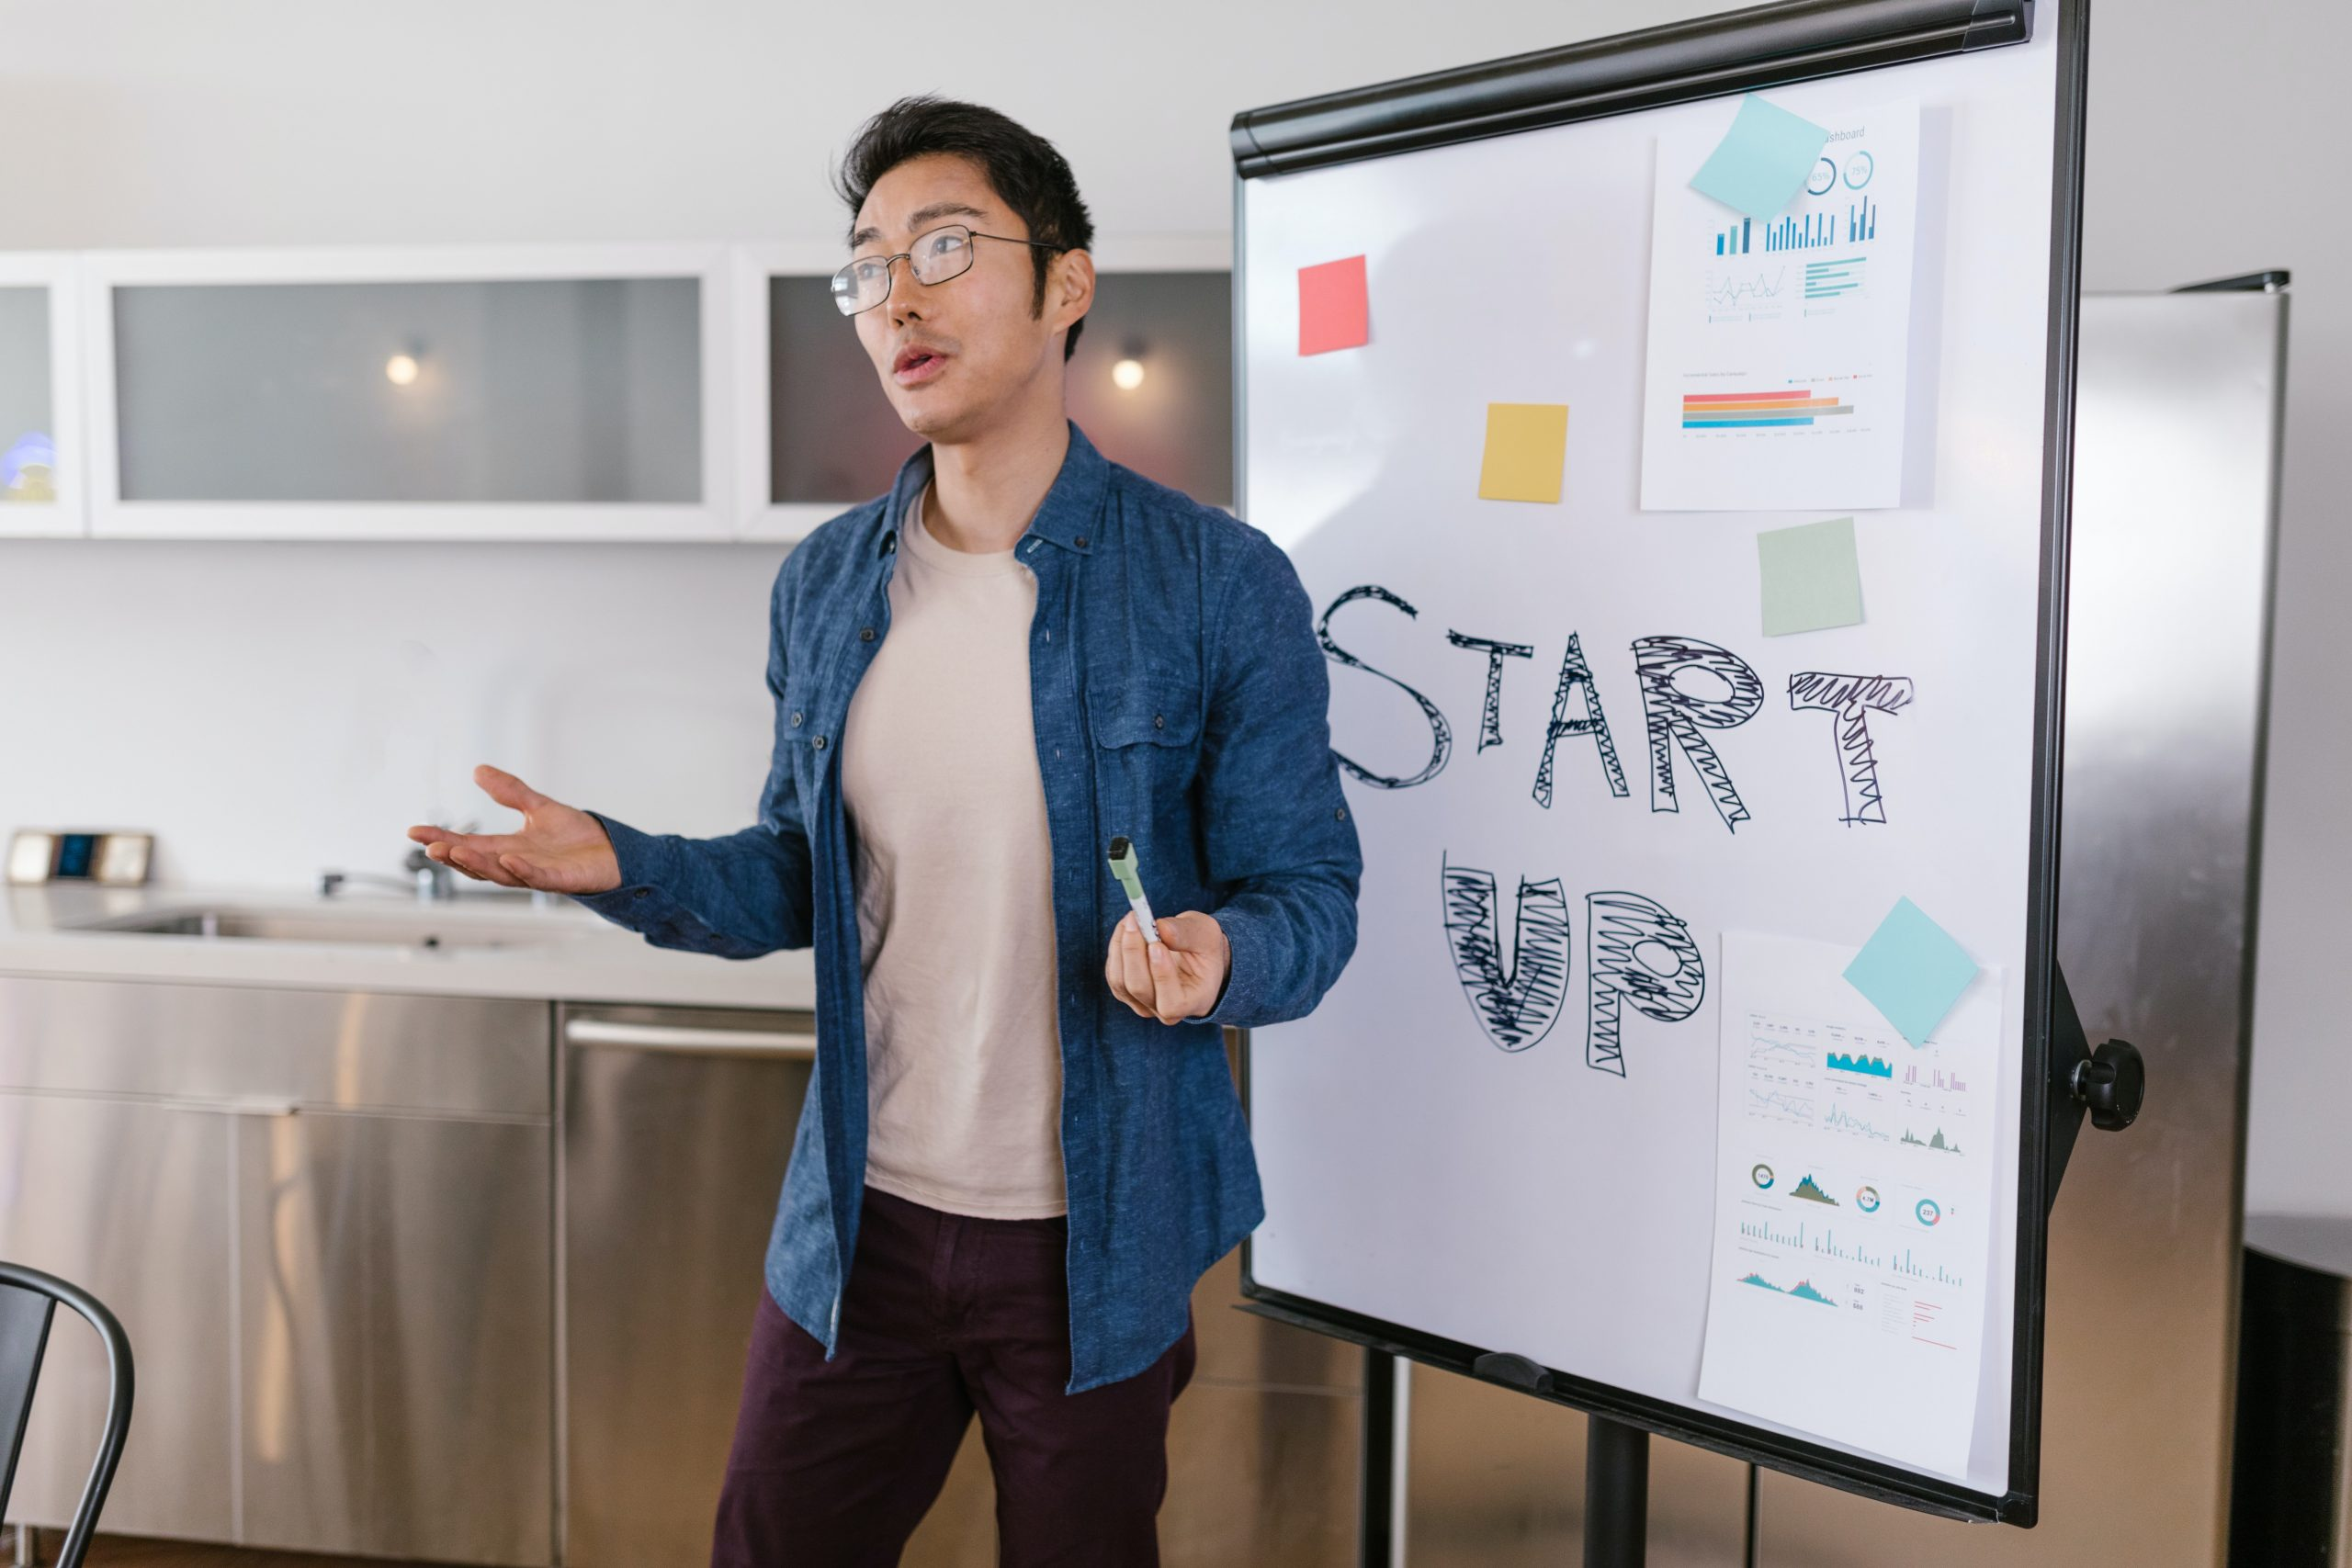 FIVE TIPS ON HOW TO PITCH YOUR STARTUP